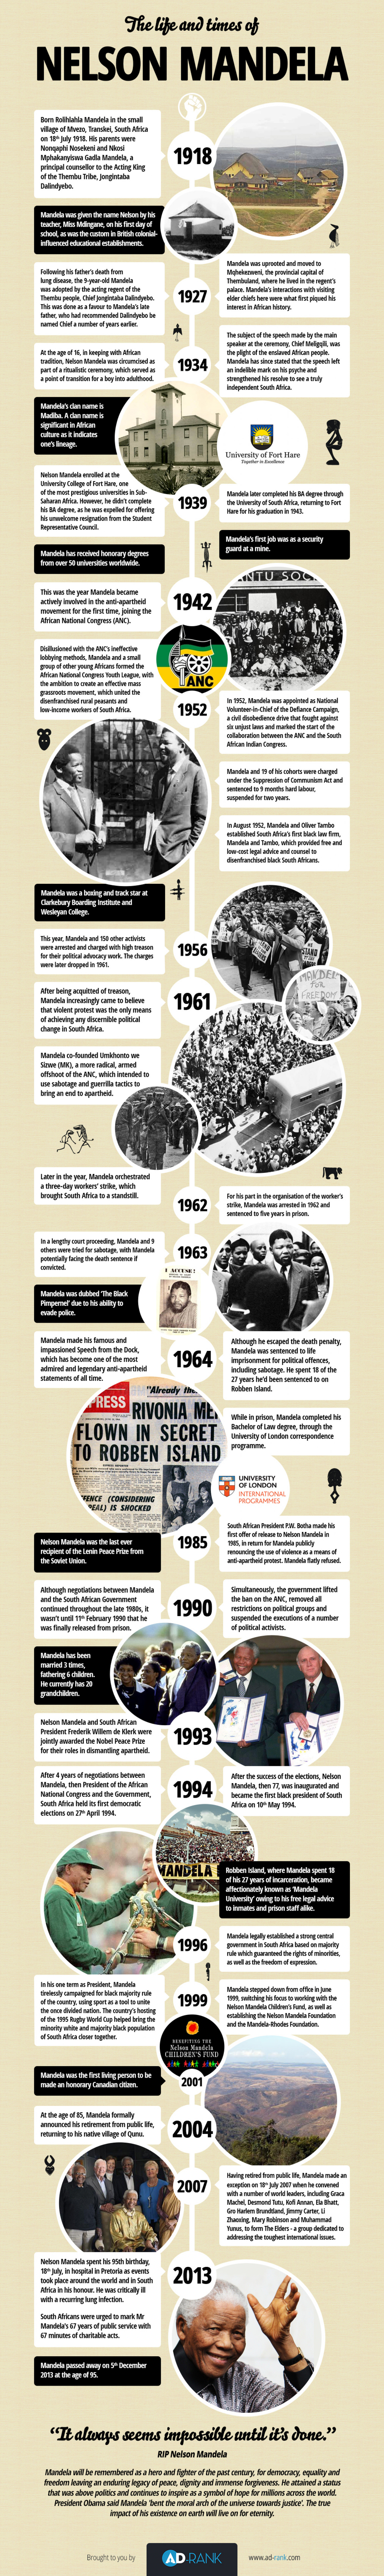 The life and times of Nelson Mandela Infographic